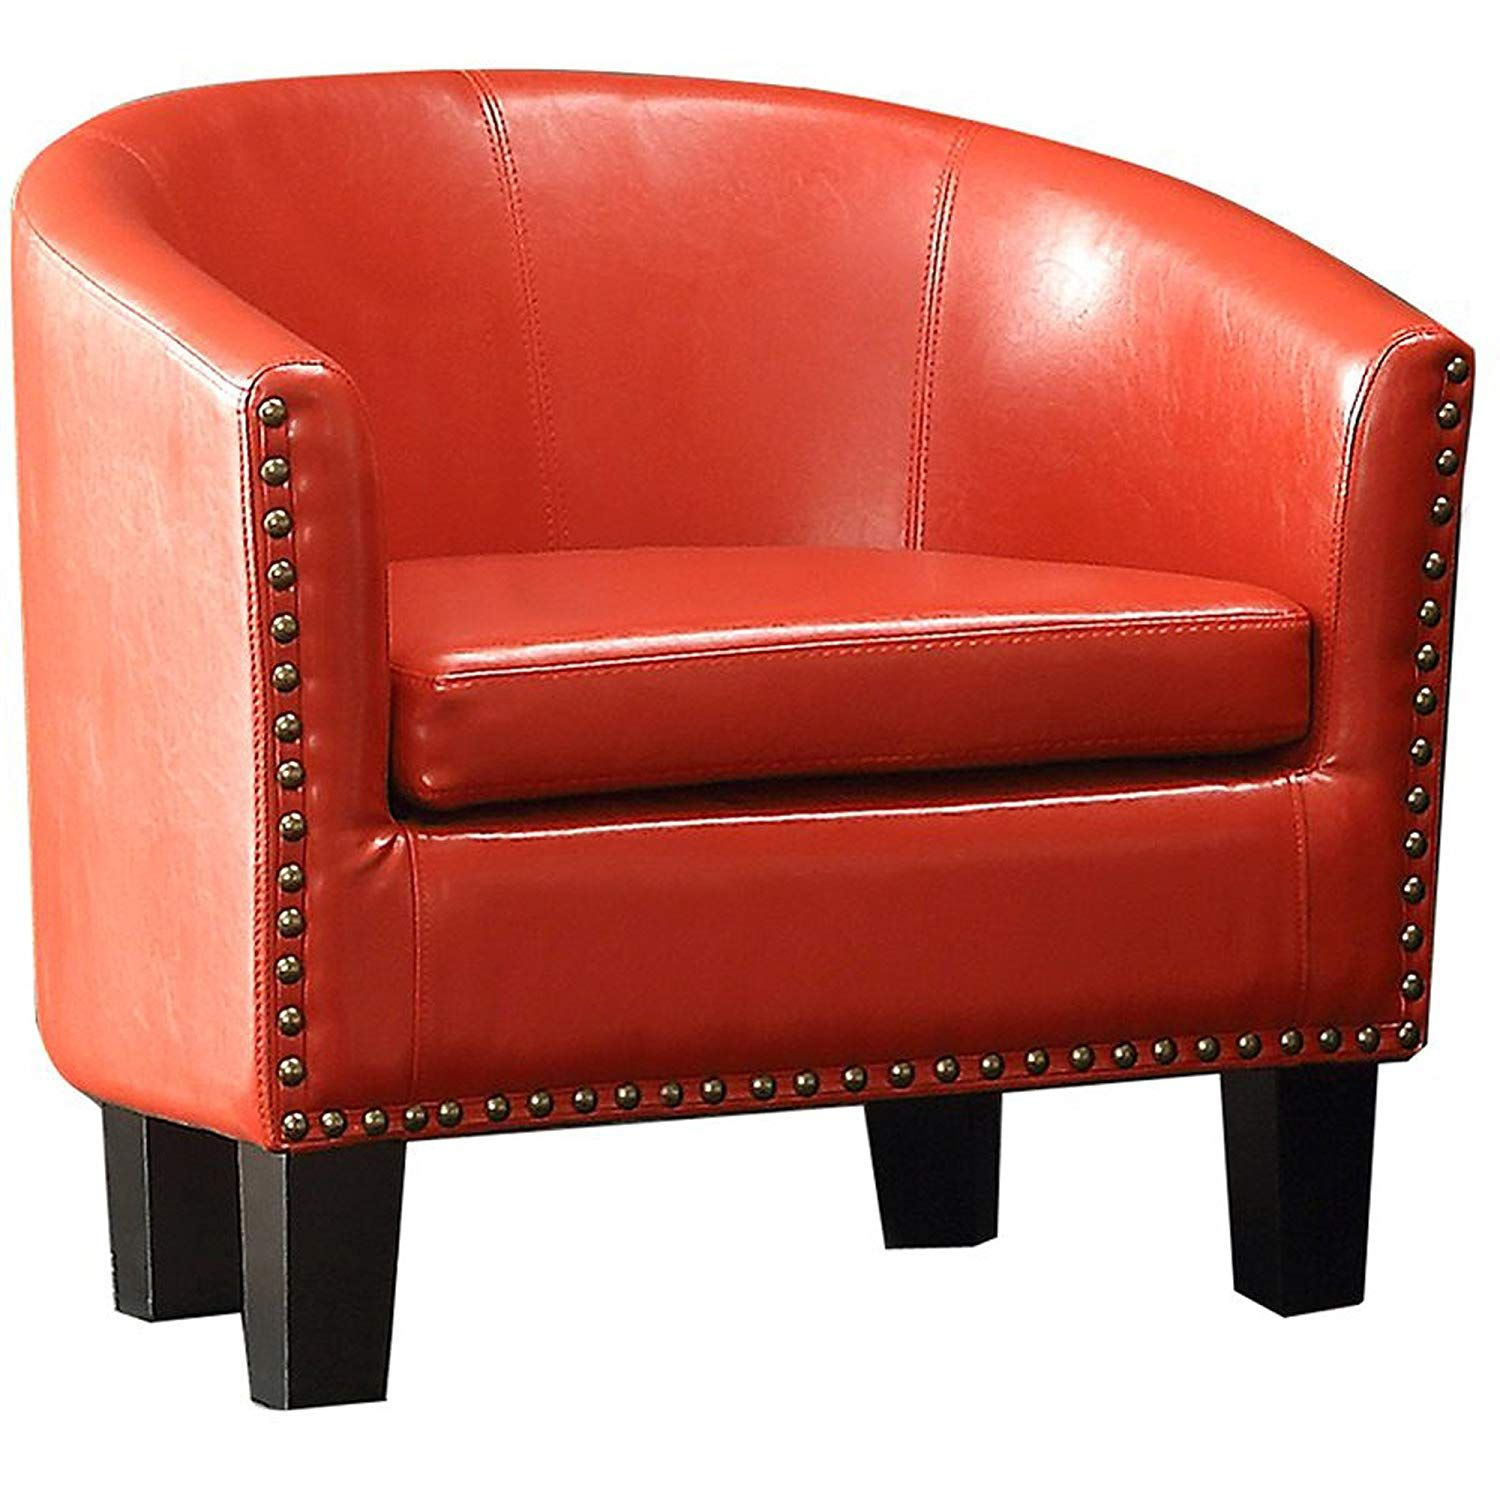 Leather Upholstered Armchair Barrel Back Contemporary